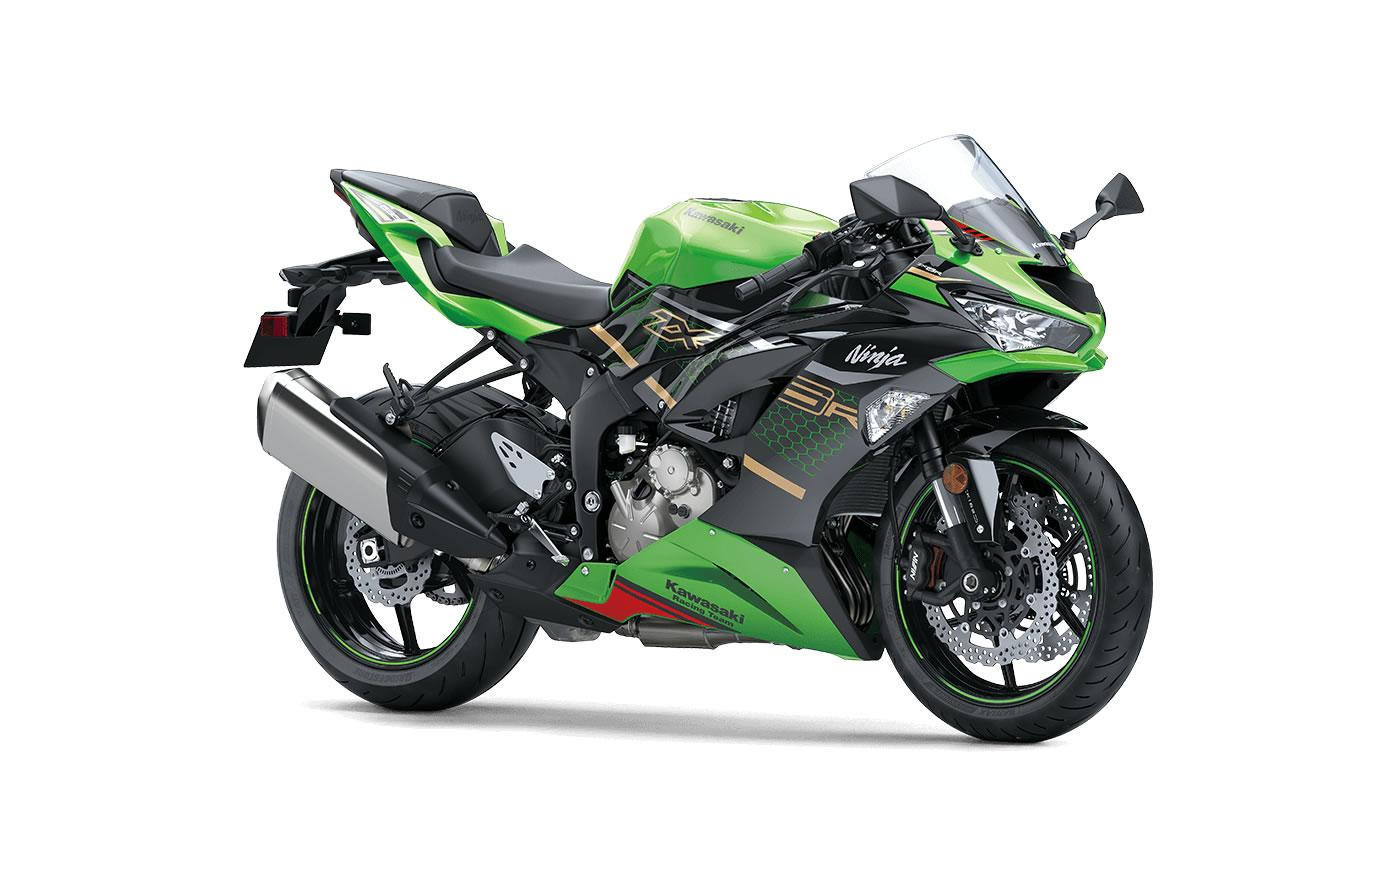 supersports-kawasaki-ninja-zx-6r-abs-krt-edition